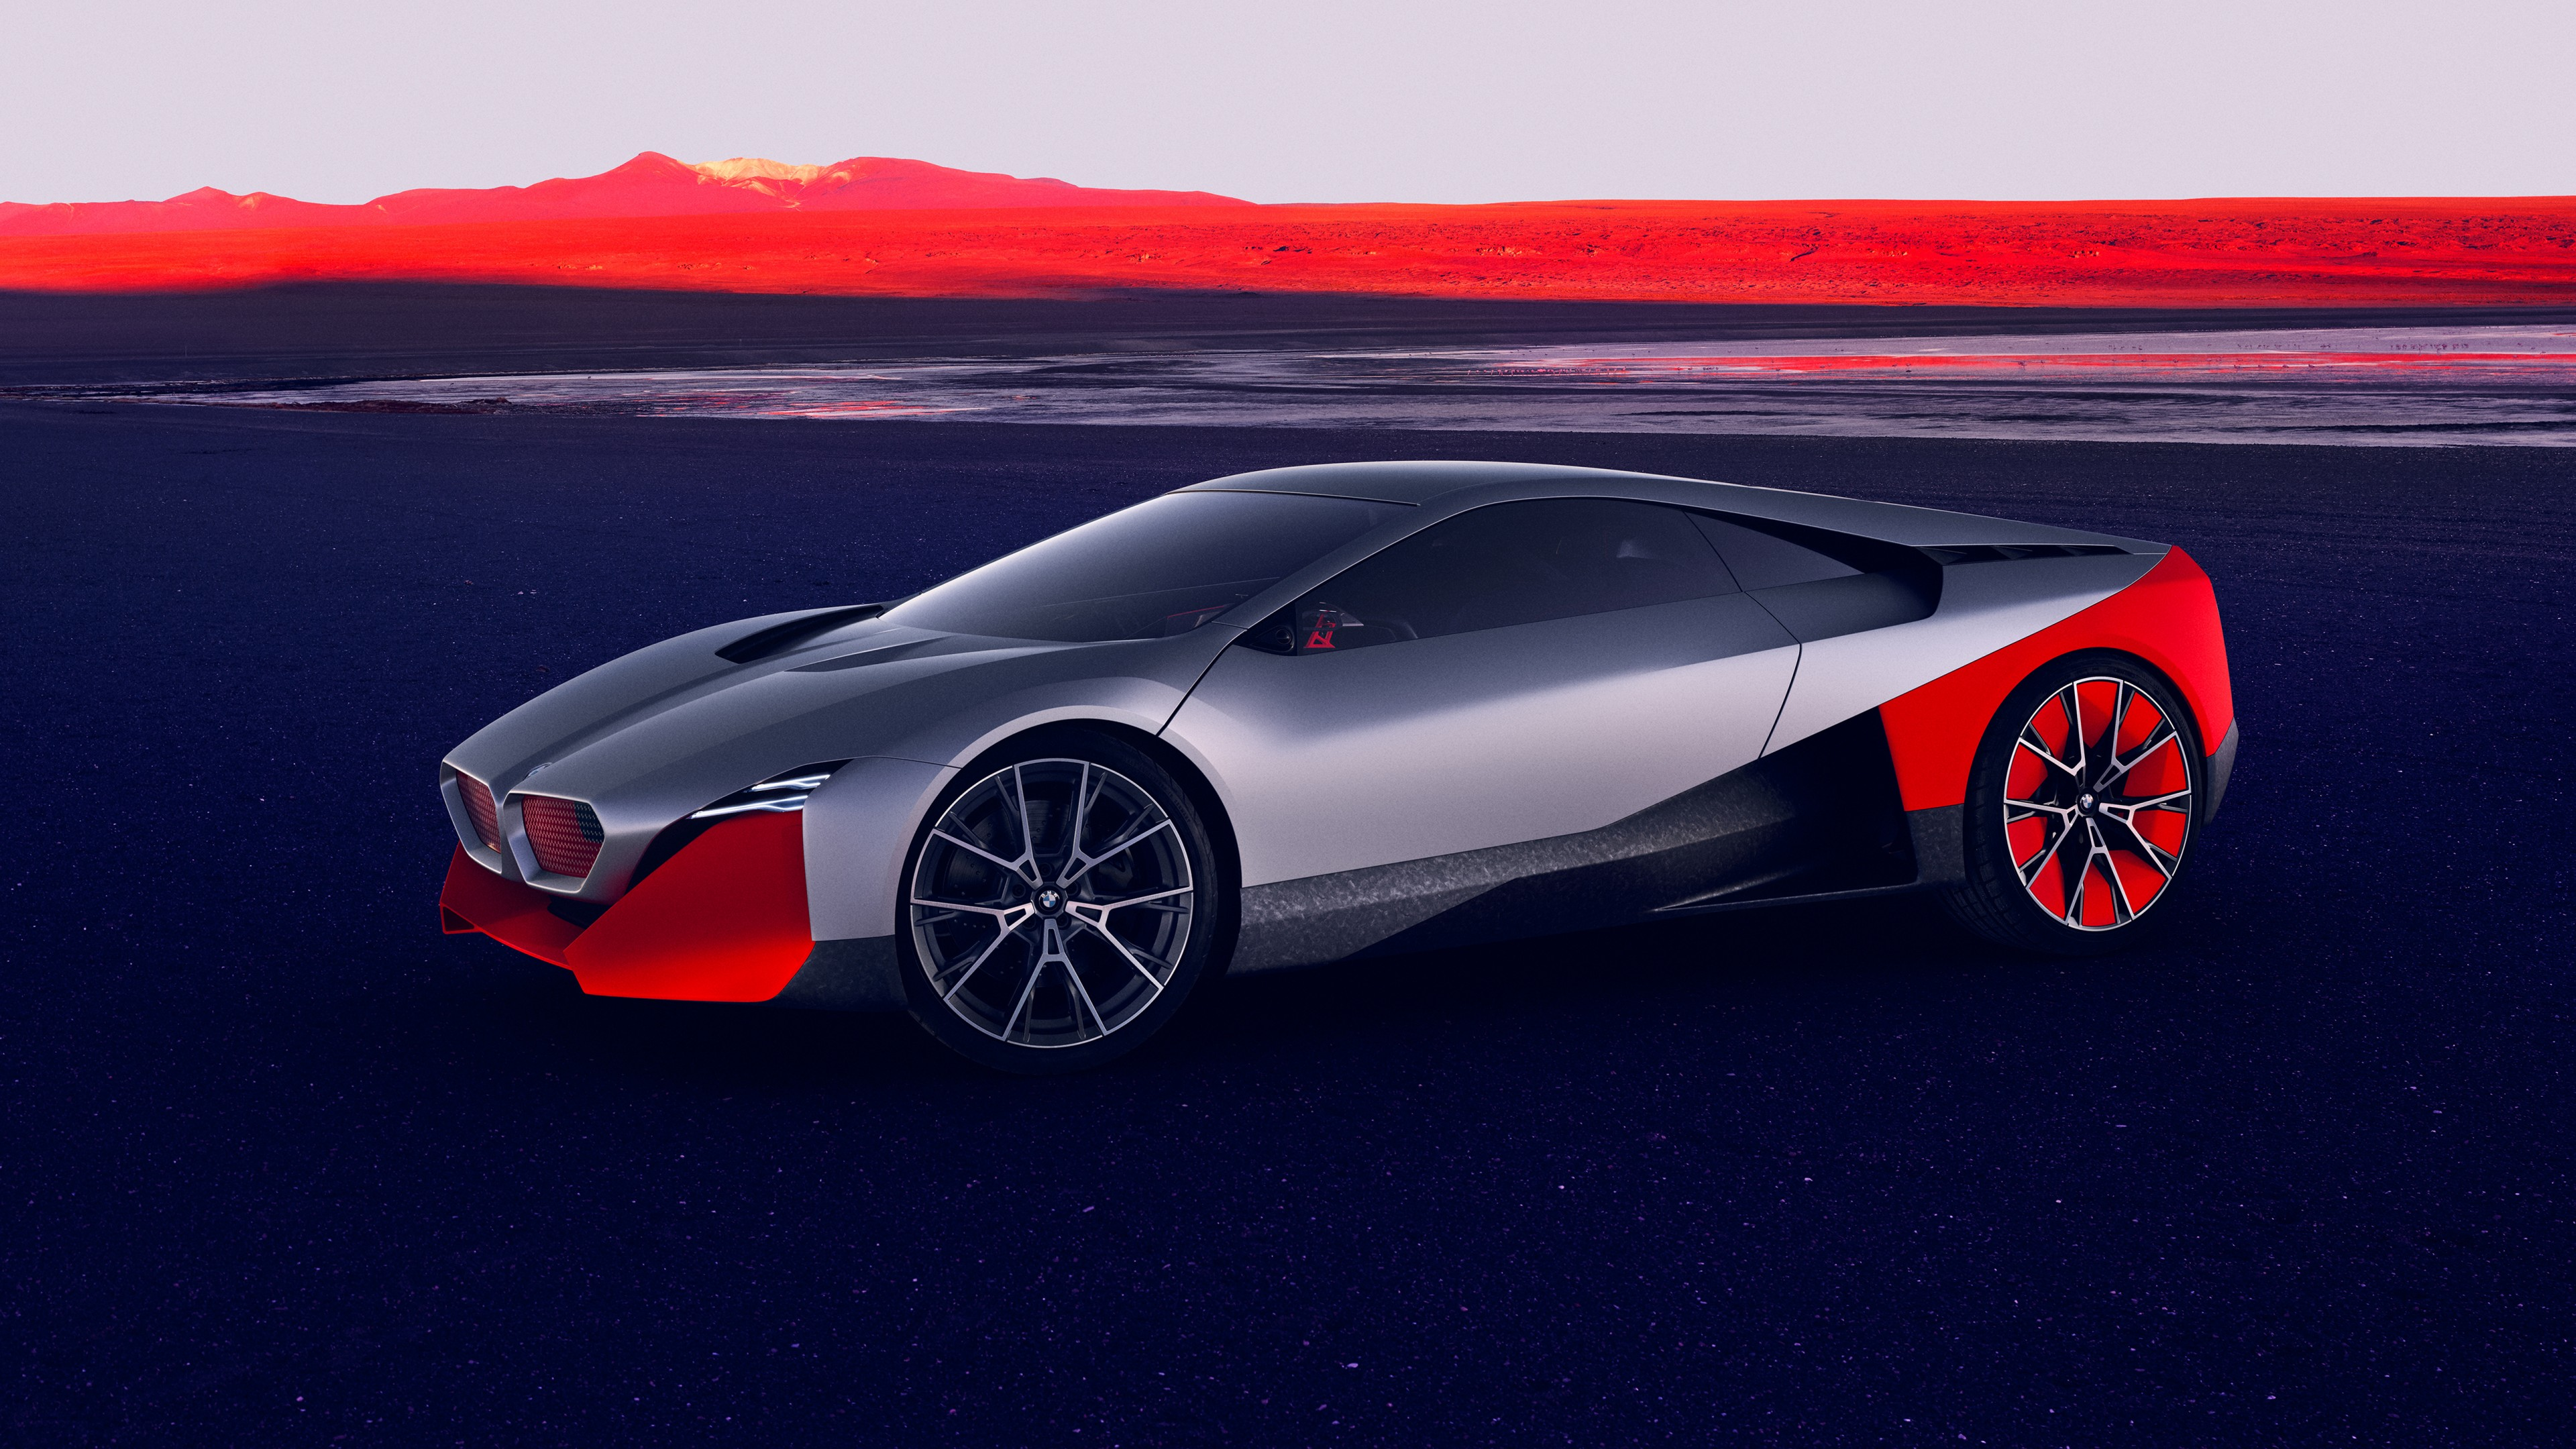 BMW Vision M NEXT 2019 4K 9 Wallpaper | HD Car Wallpapers ...